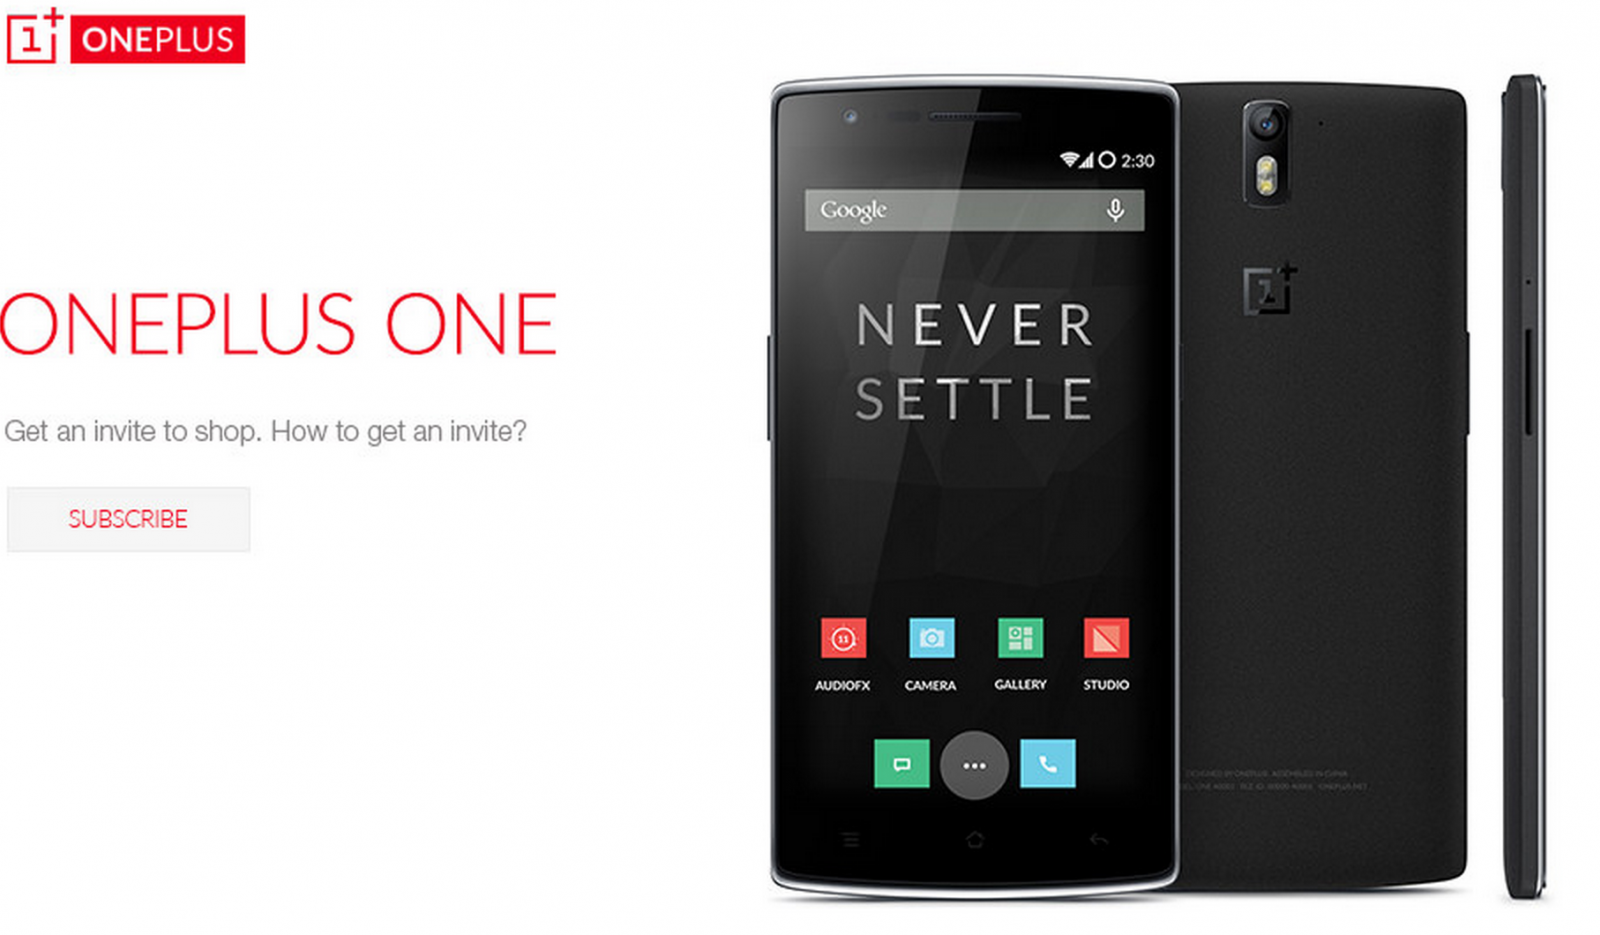 OnePlus One Launches in India With Invites